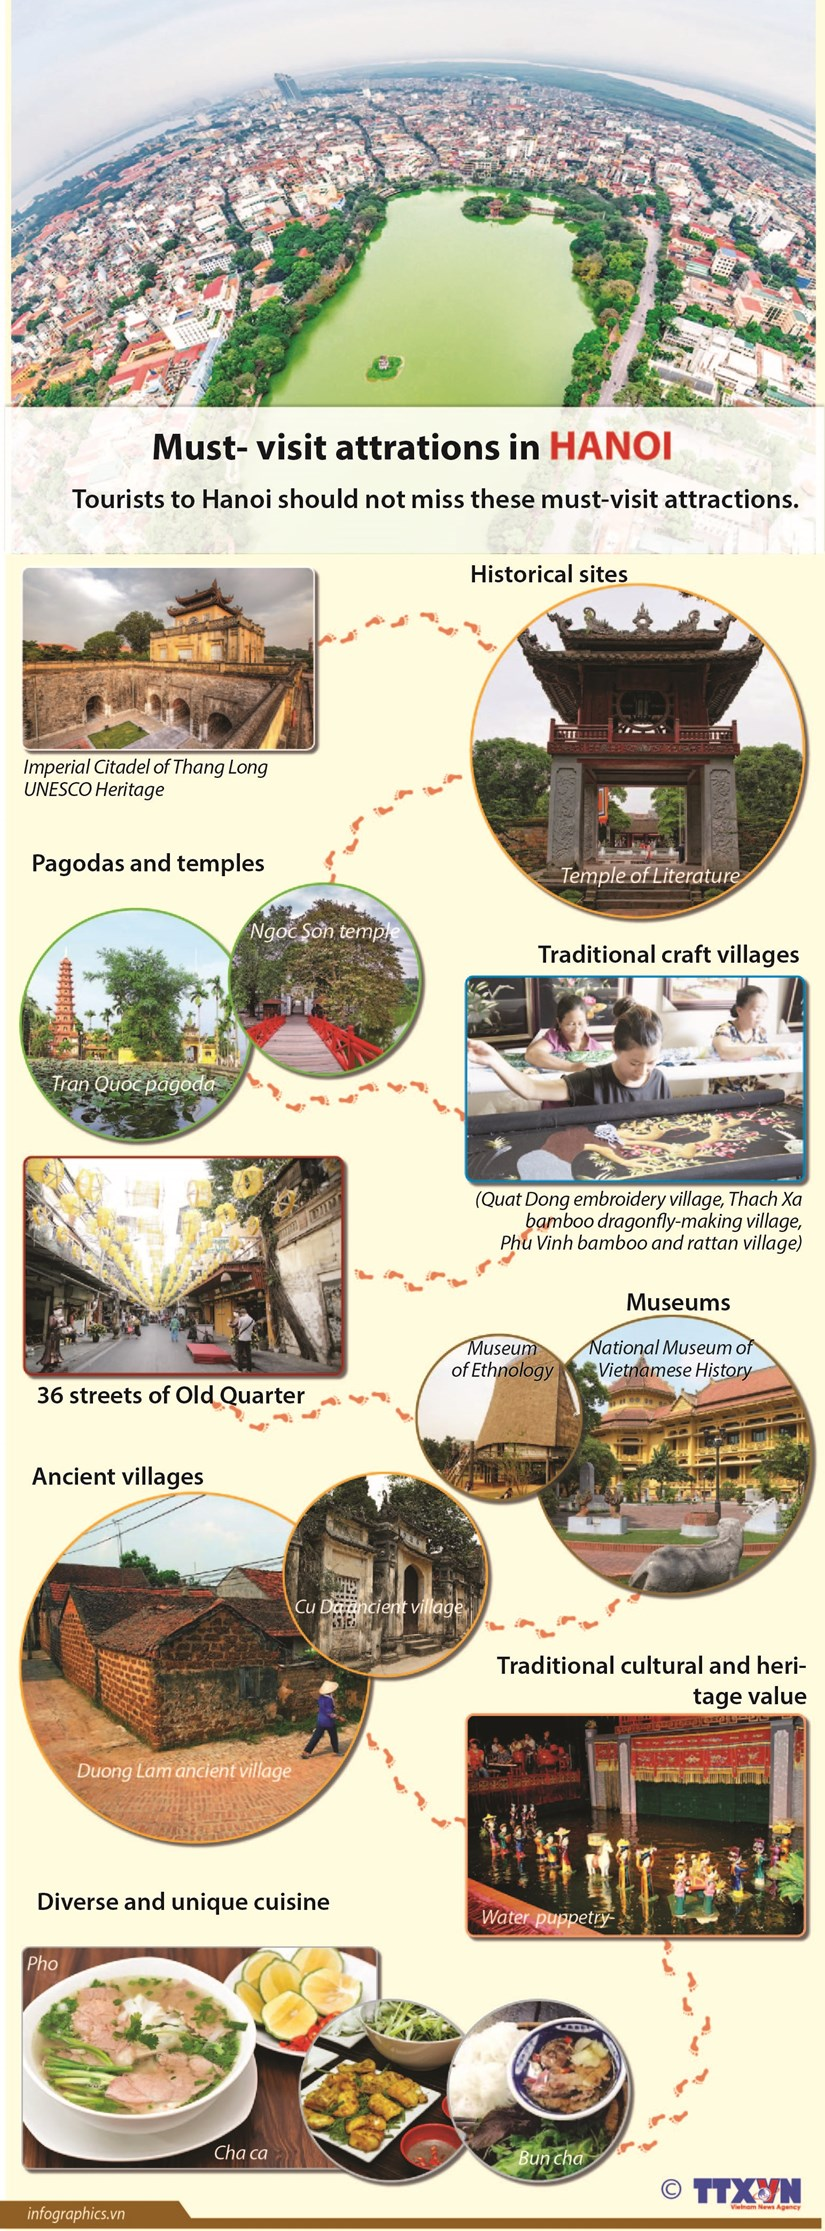 Must - visit attractions in Hanoi hinh anh 1